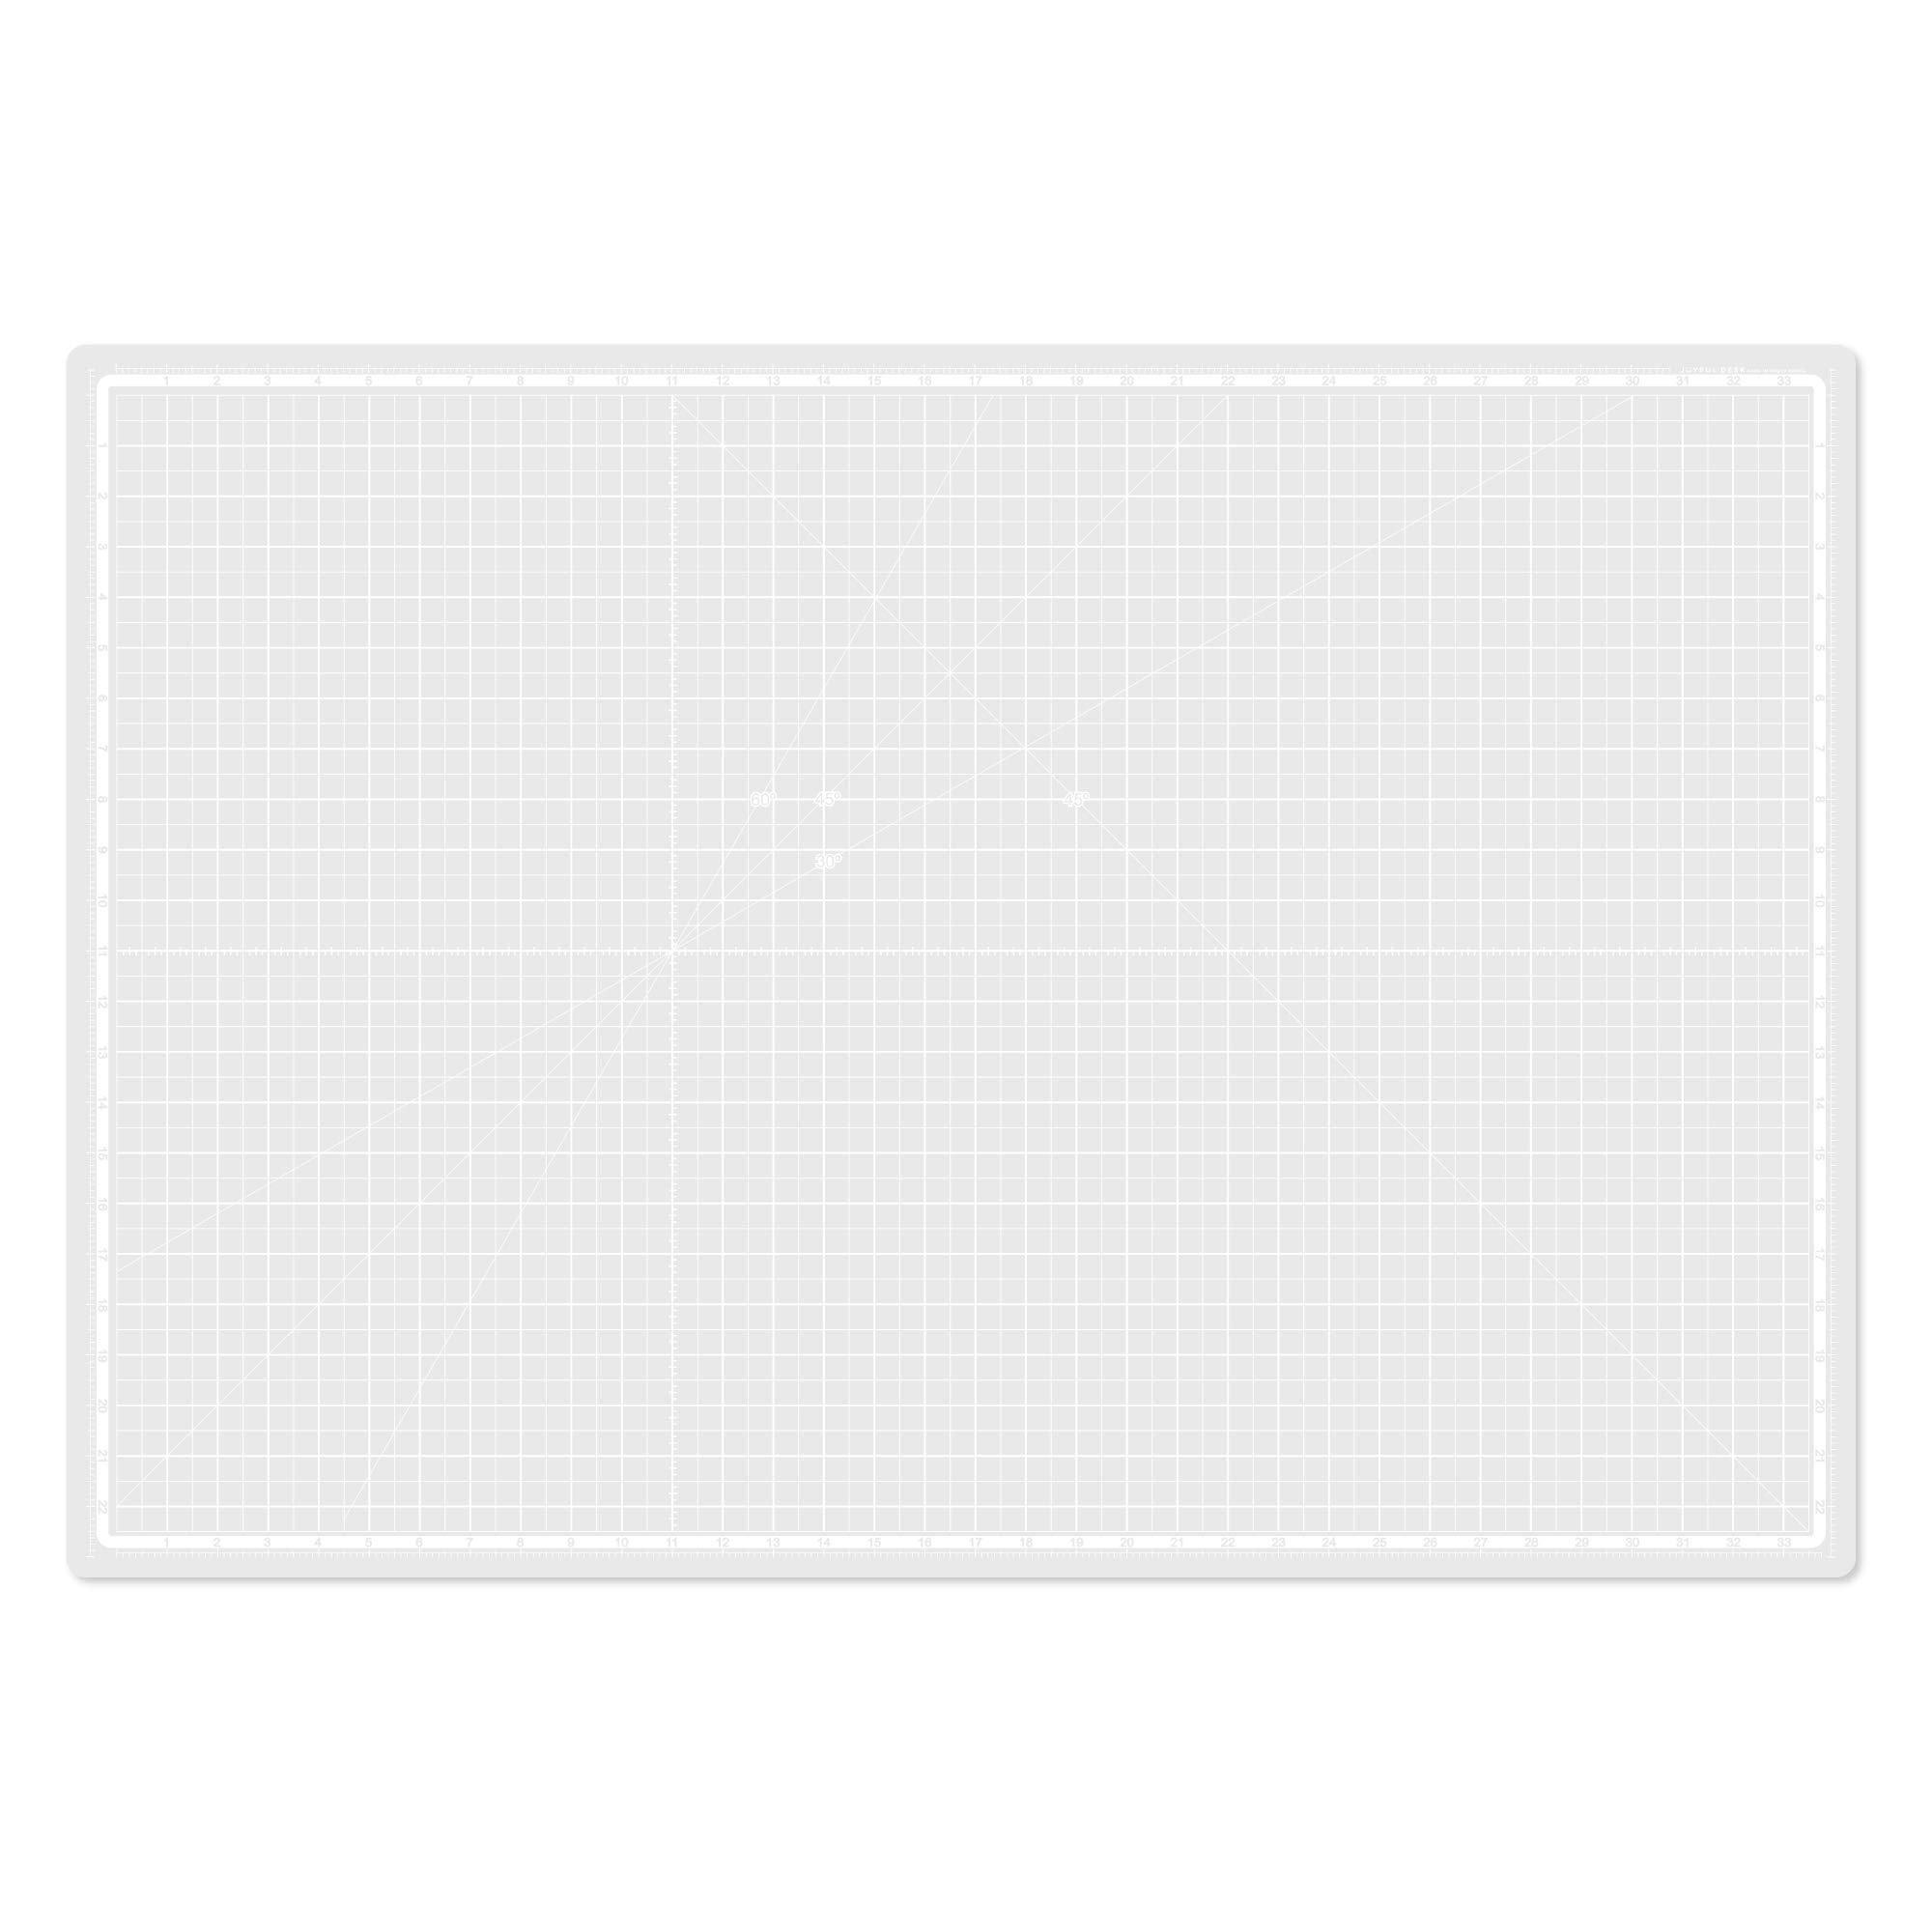 Joyful Desk Self Healing 8-Layers Translucent Cutting Mat A1 White, 22 x 33 inches for Sewing, Crafting, Quilting and Other Art Works by Joyful Desk